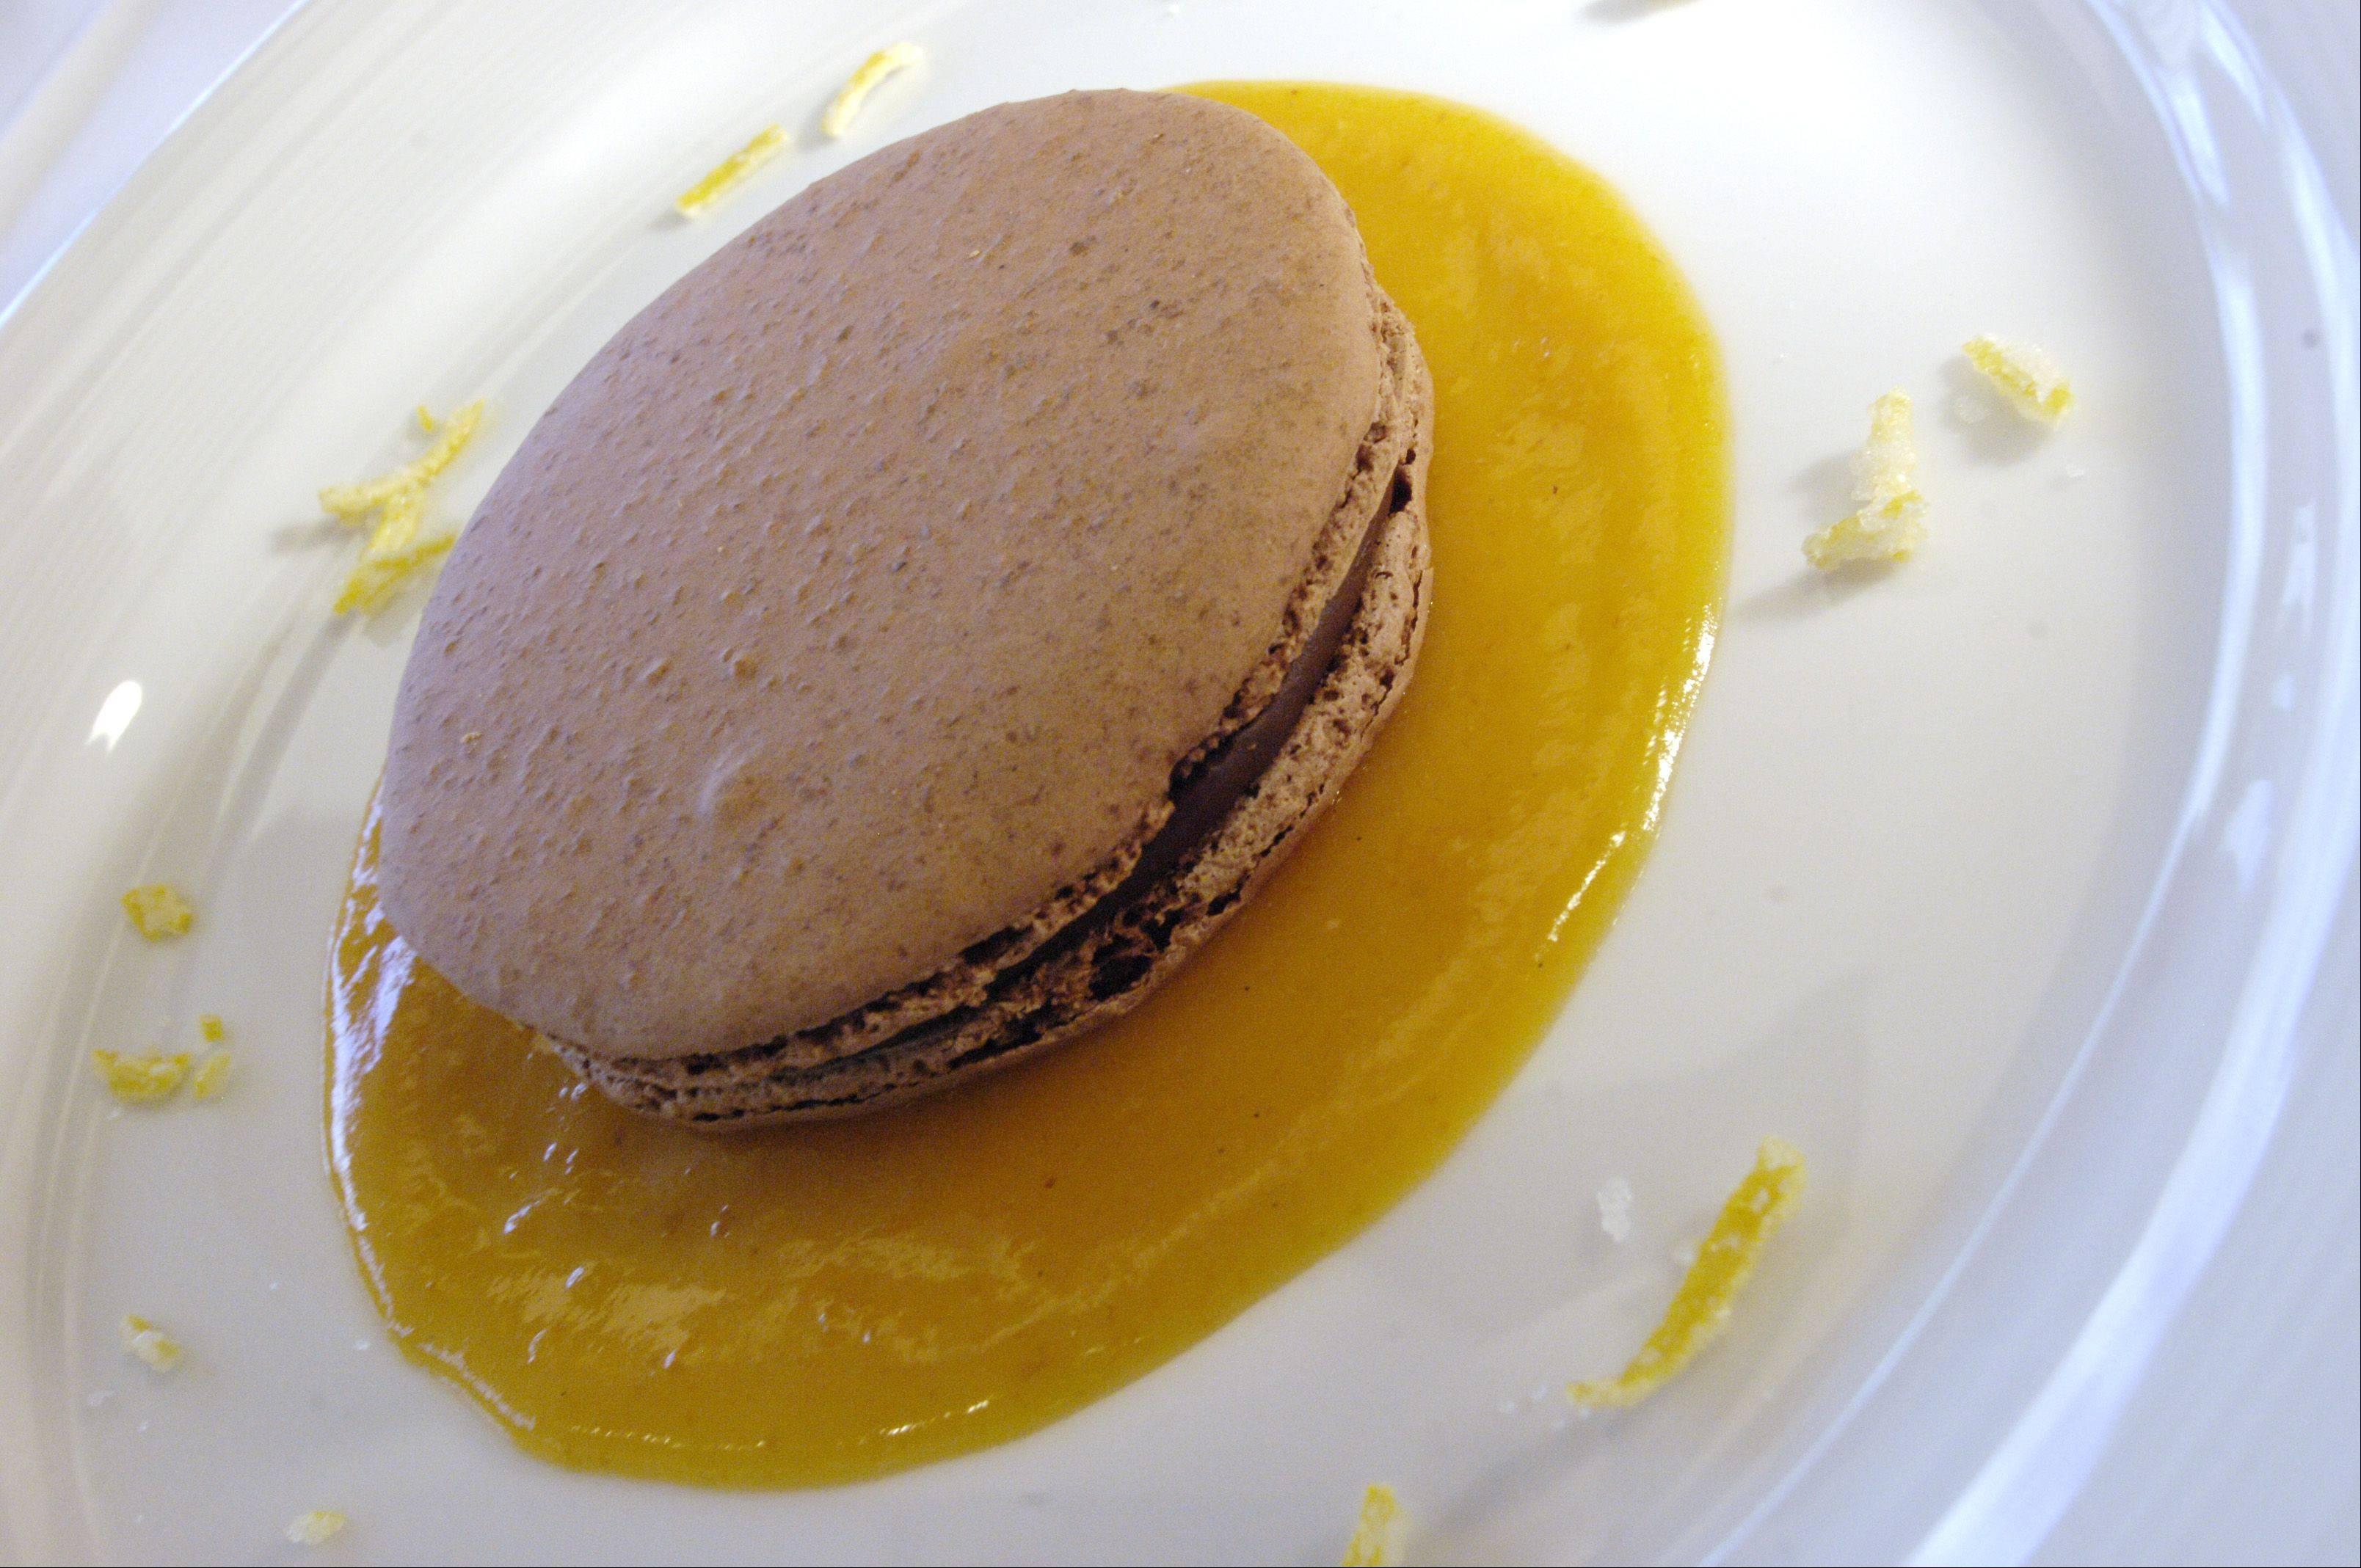 Cap off dinner with creme brulee or a macaroon from the Waterleaf restaurant in Glen Ellyn.